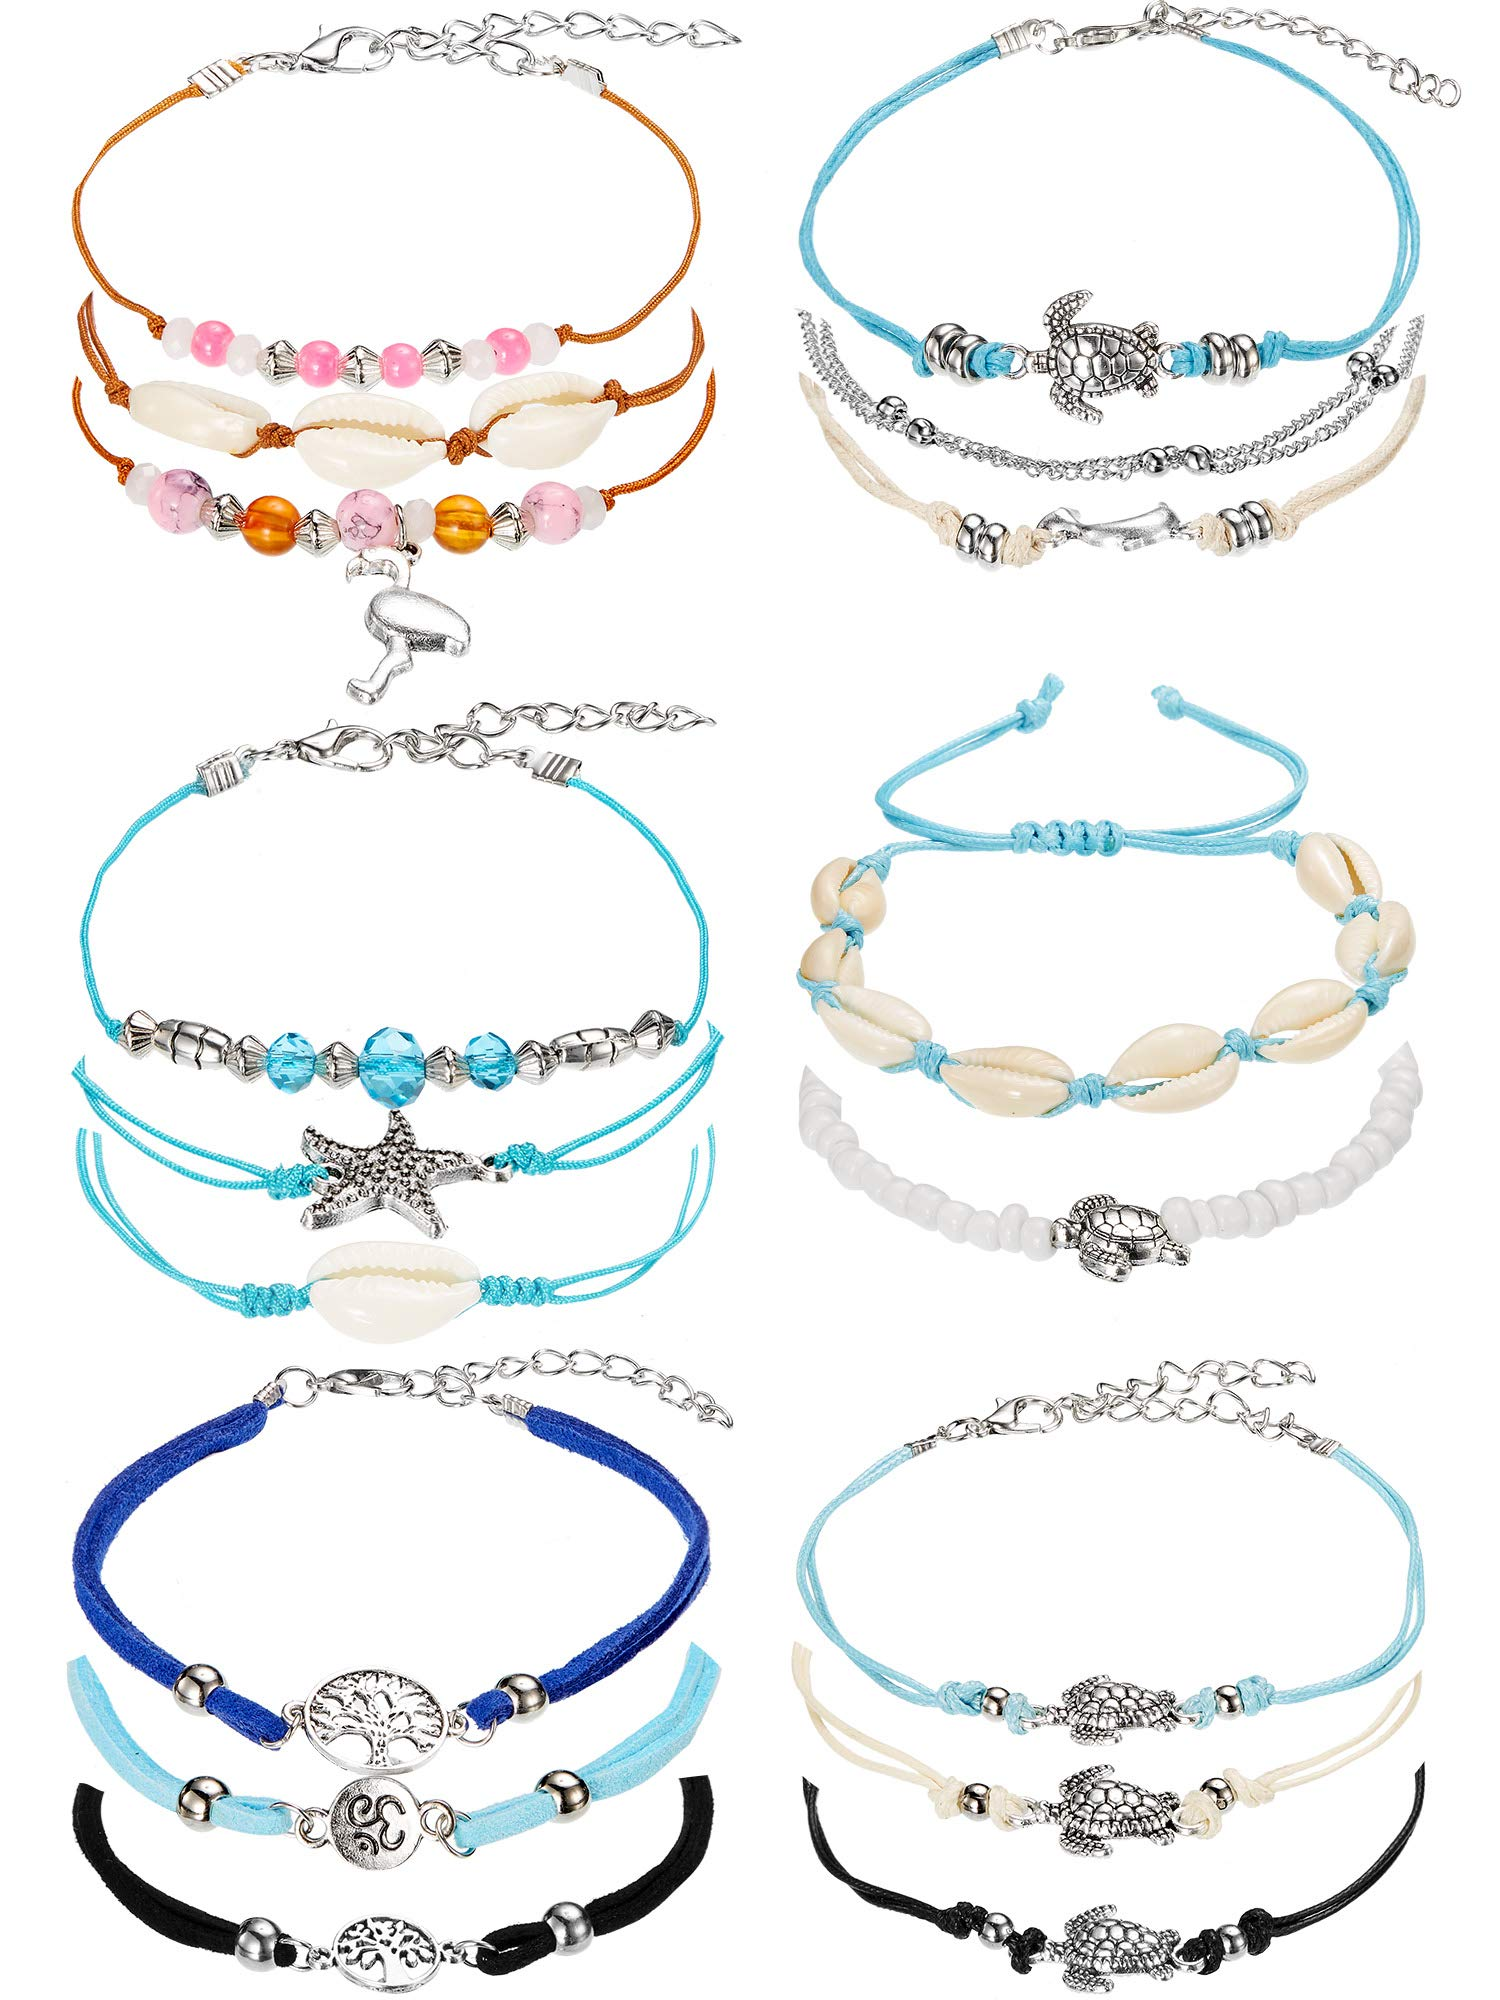 meekoo 17 Pieces Anklet Bracelets Adjustable Boho Turtle Starfish Shell Flamingo Beach Ankle Bracelets Foot Jewelry for Women (Style A)